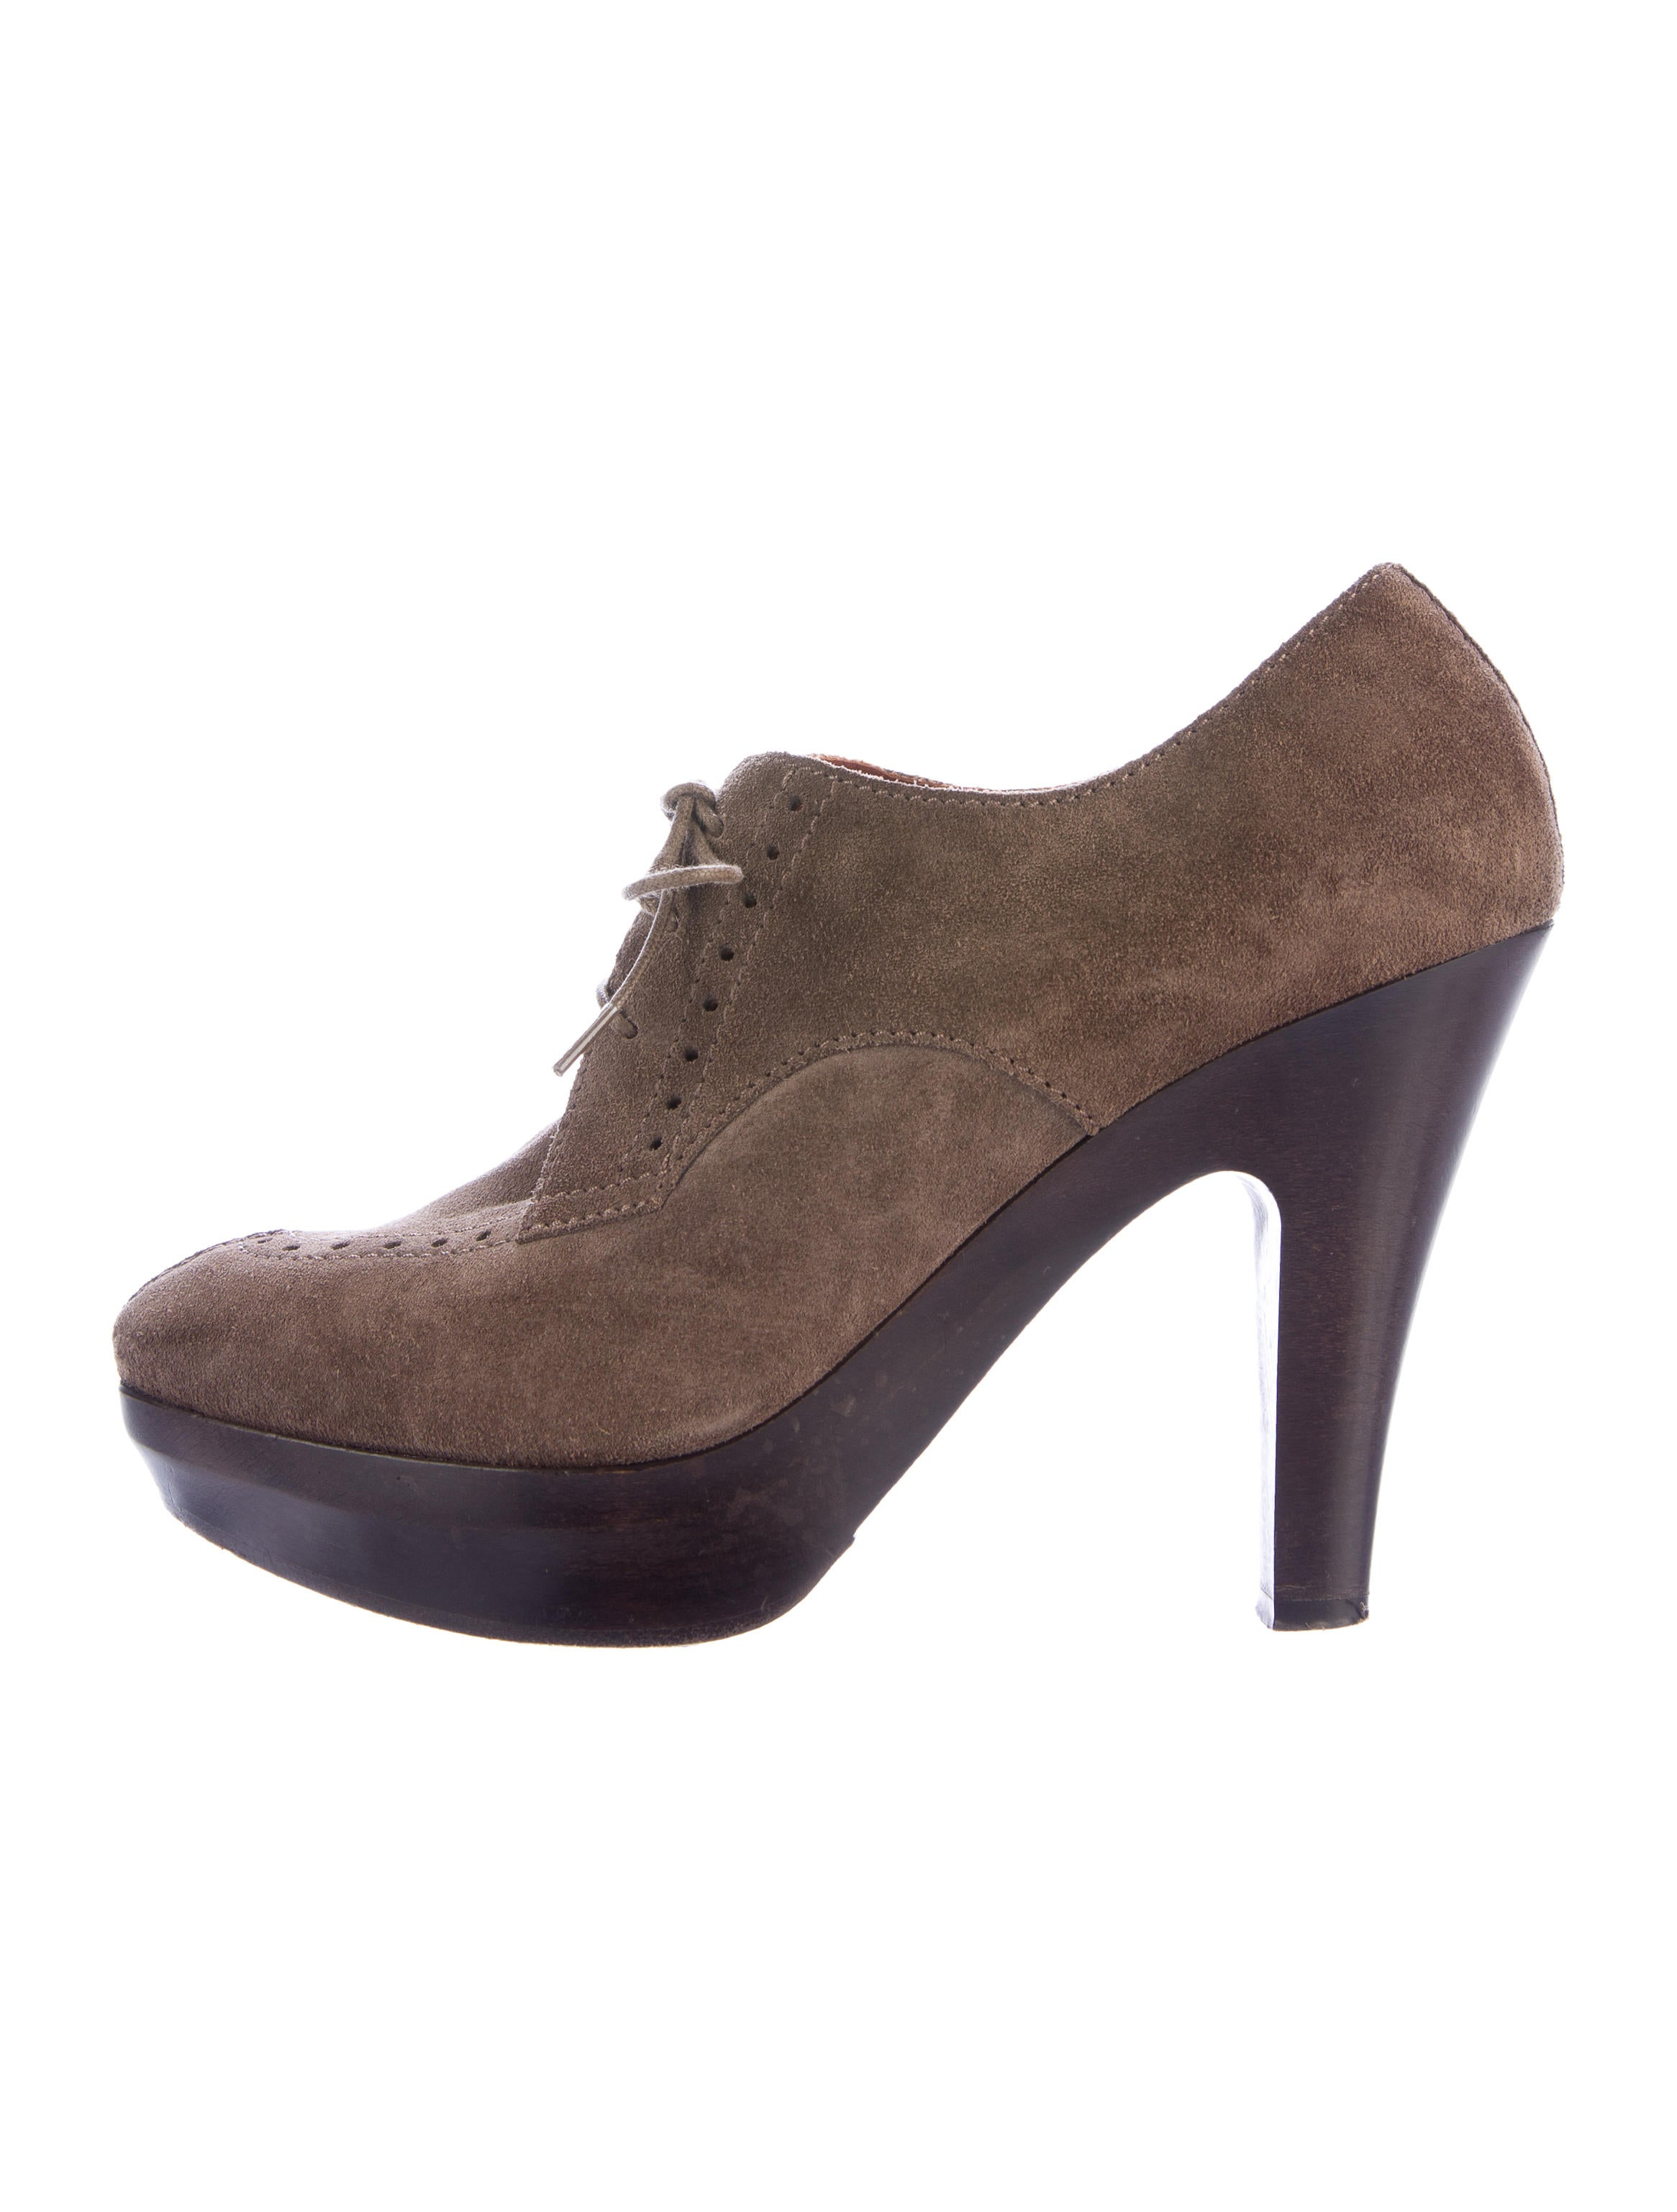 Discover the whole range of women's shoe styles with ASOS. From wedged sandals to sneakers & ballet flats, browse our collection and find your sole mate. ASOS DESIGN Fredo suede knotted two part with tie leg. $ ASOS DESIGN Foster suede studded two part with tie leg. New Look Suedette Lace Up Heeled Boot. $ ASOS DESIGN Paris.